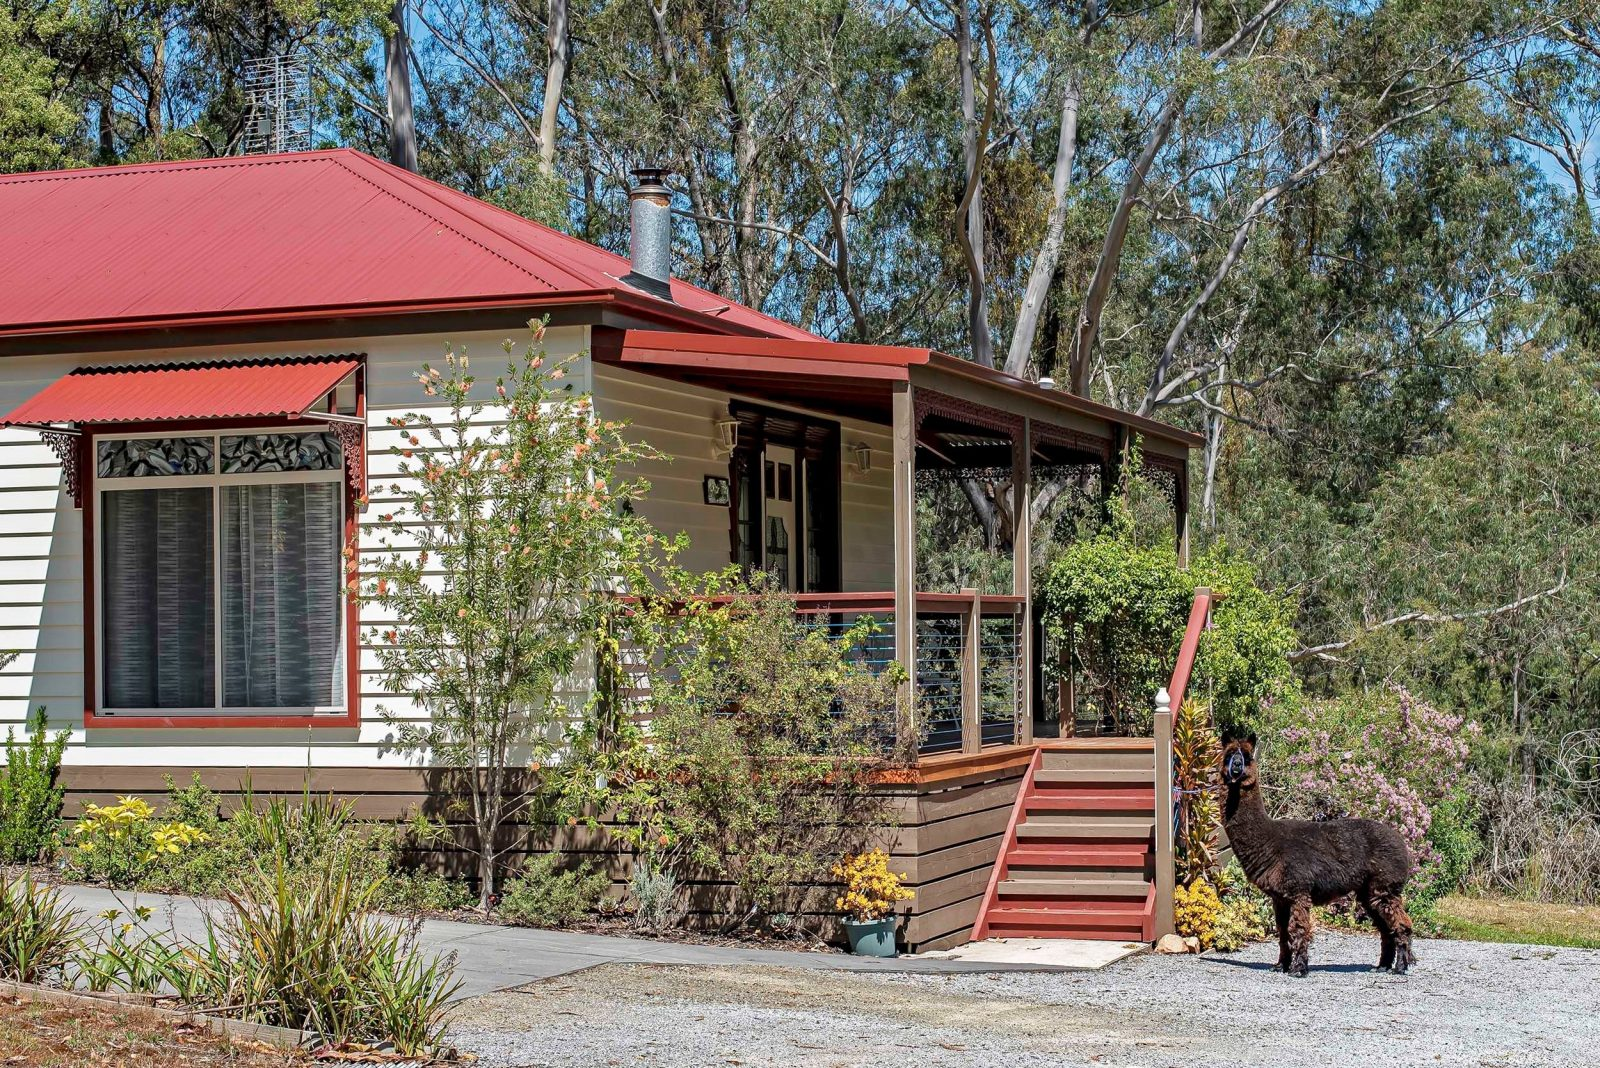 Leo is one of the alpacas that grazes the paddocks at Araluen Park Cottages.